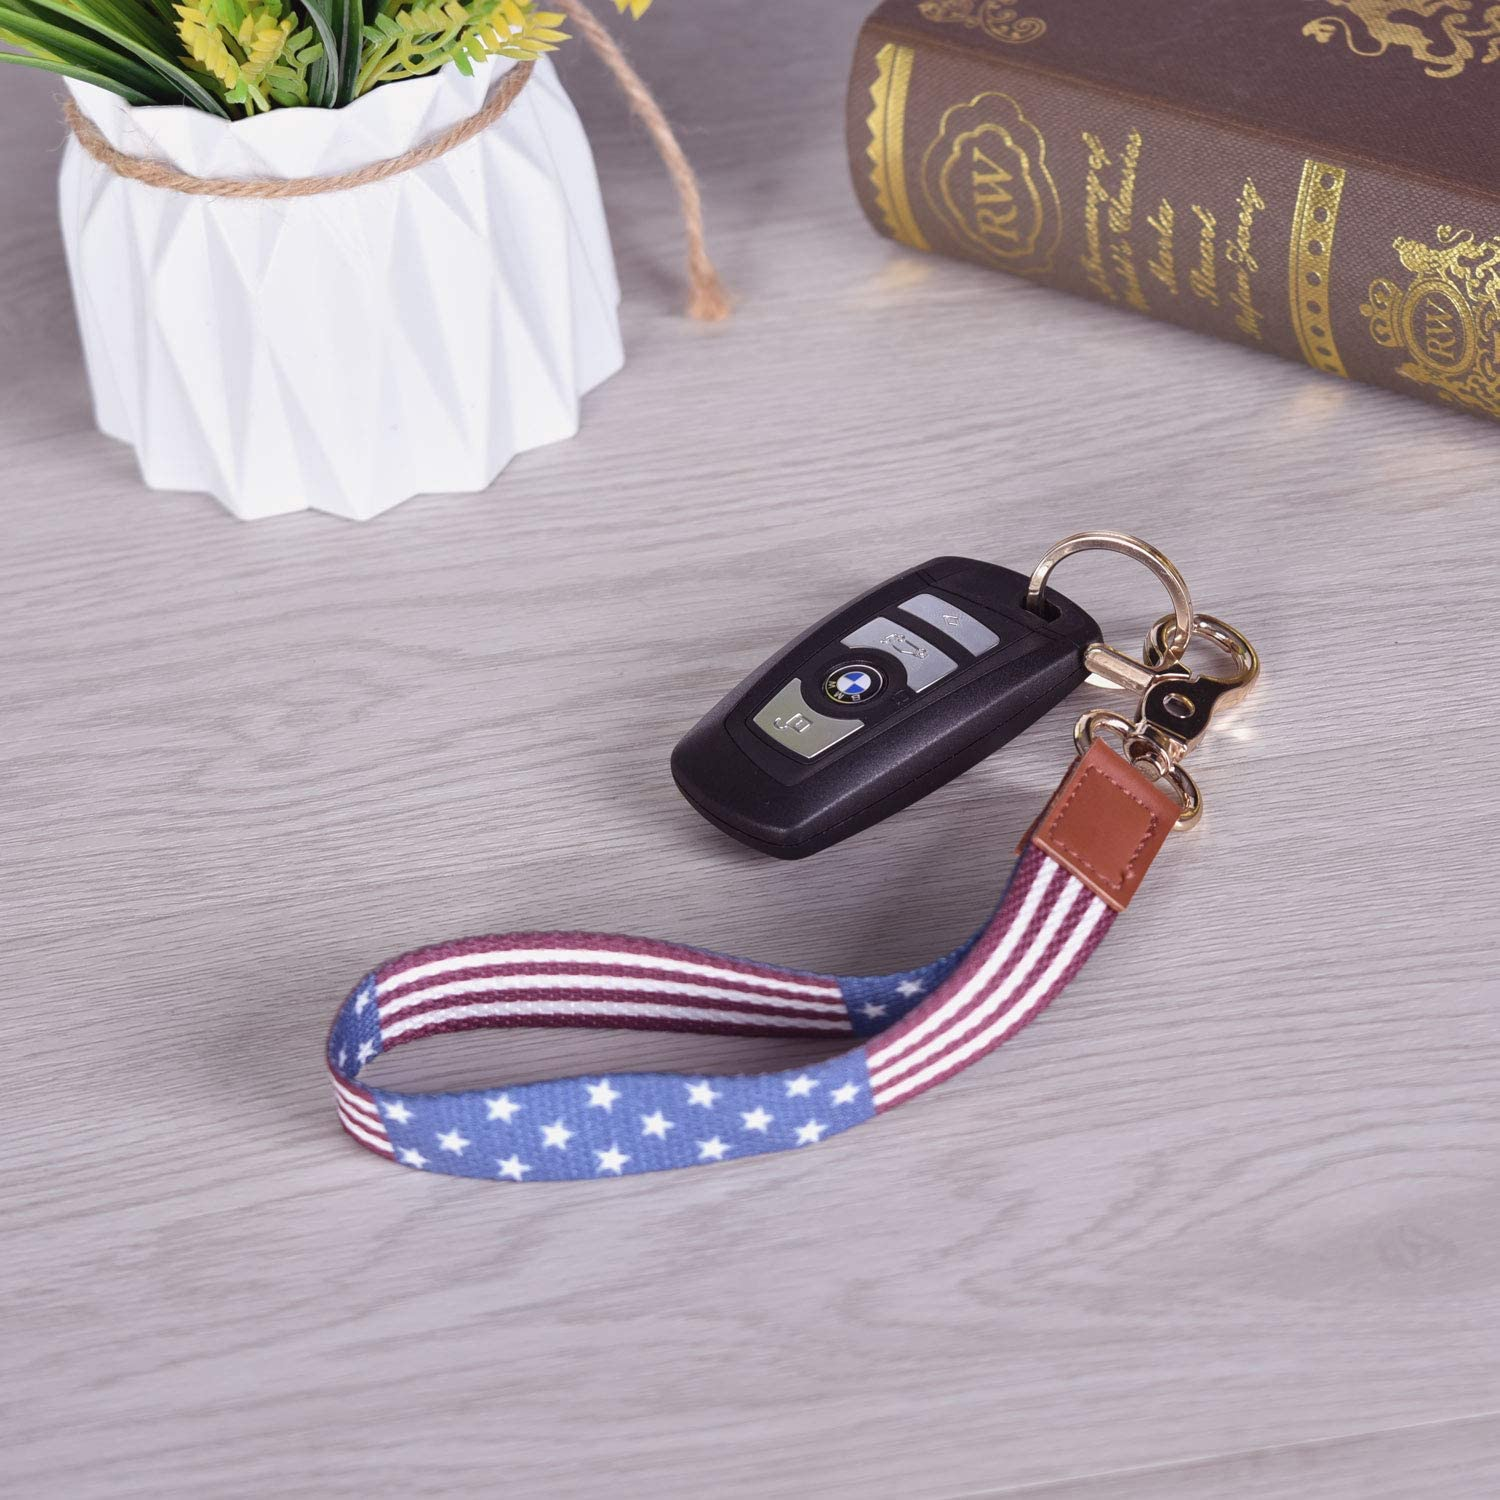 YARENKA Wrist Lanyard for Woman F Cell Mobile Phone etc,Lighe Item etc. Premium Quality Wristlet Strap Key Chain Holder with Metal Clasp and Genuine Leather for Key Chain